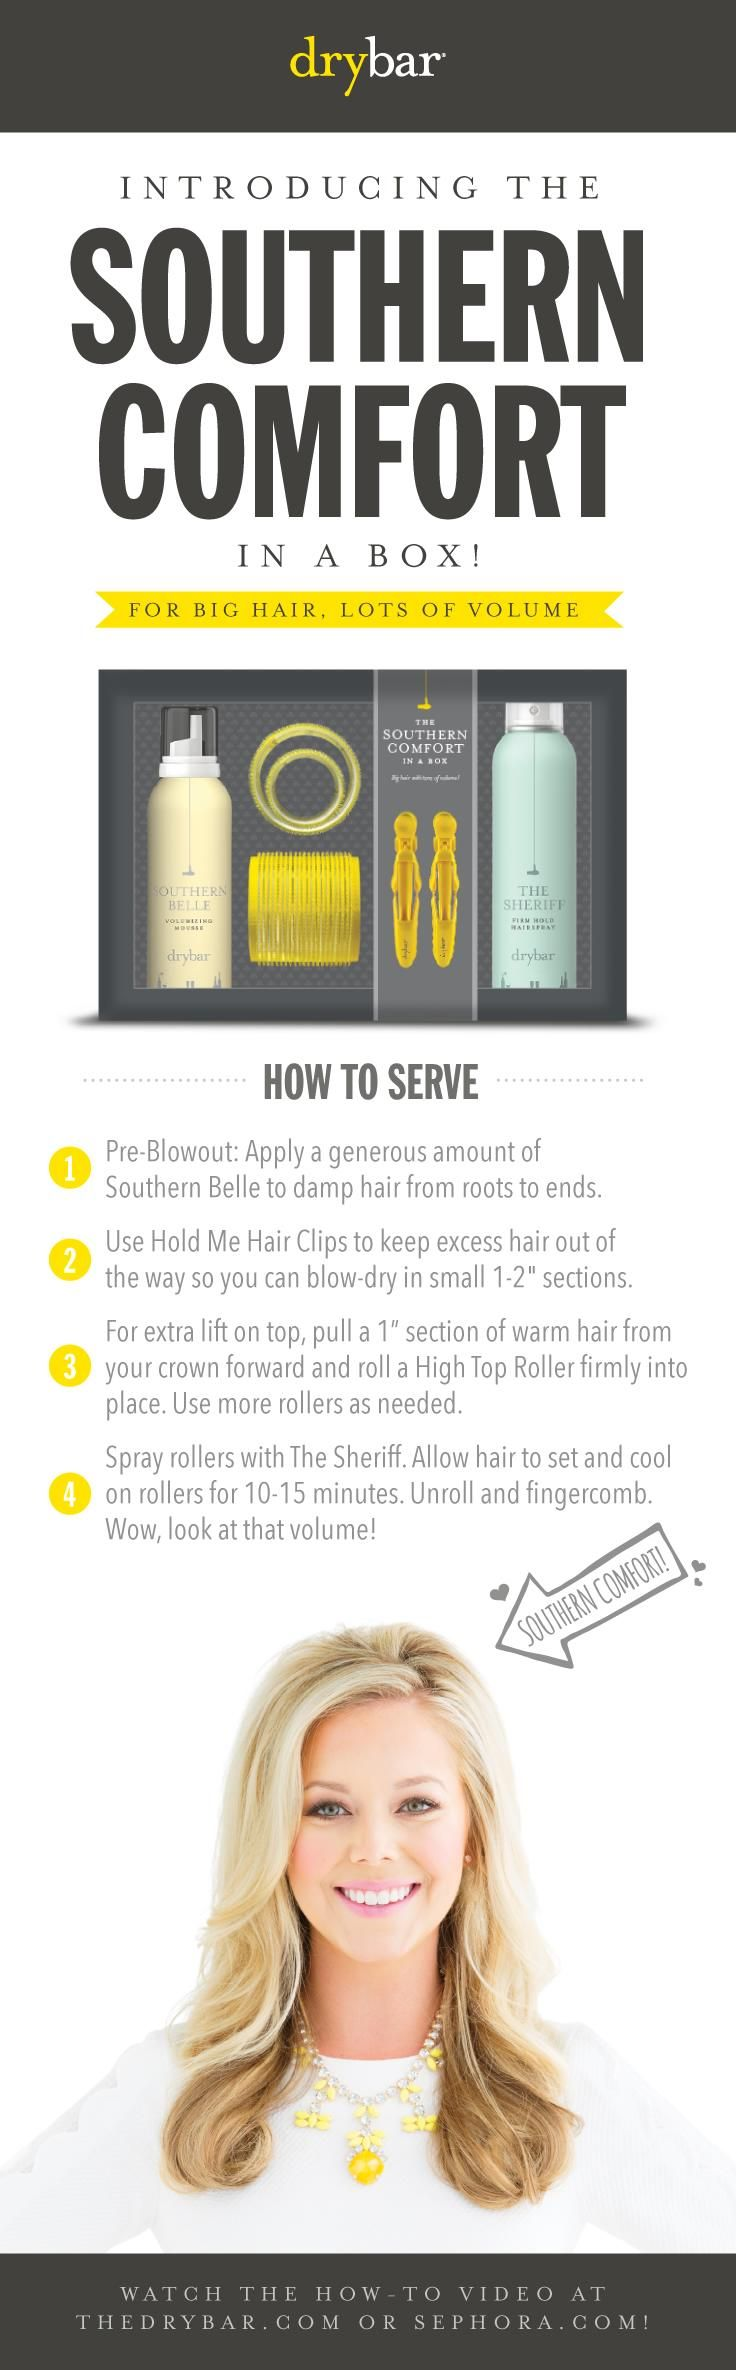 Get to Know: The Southern Comfort In A Box #Drybar #hair #blowouts